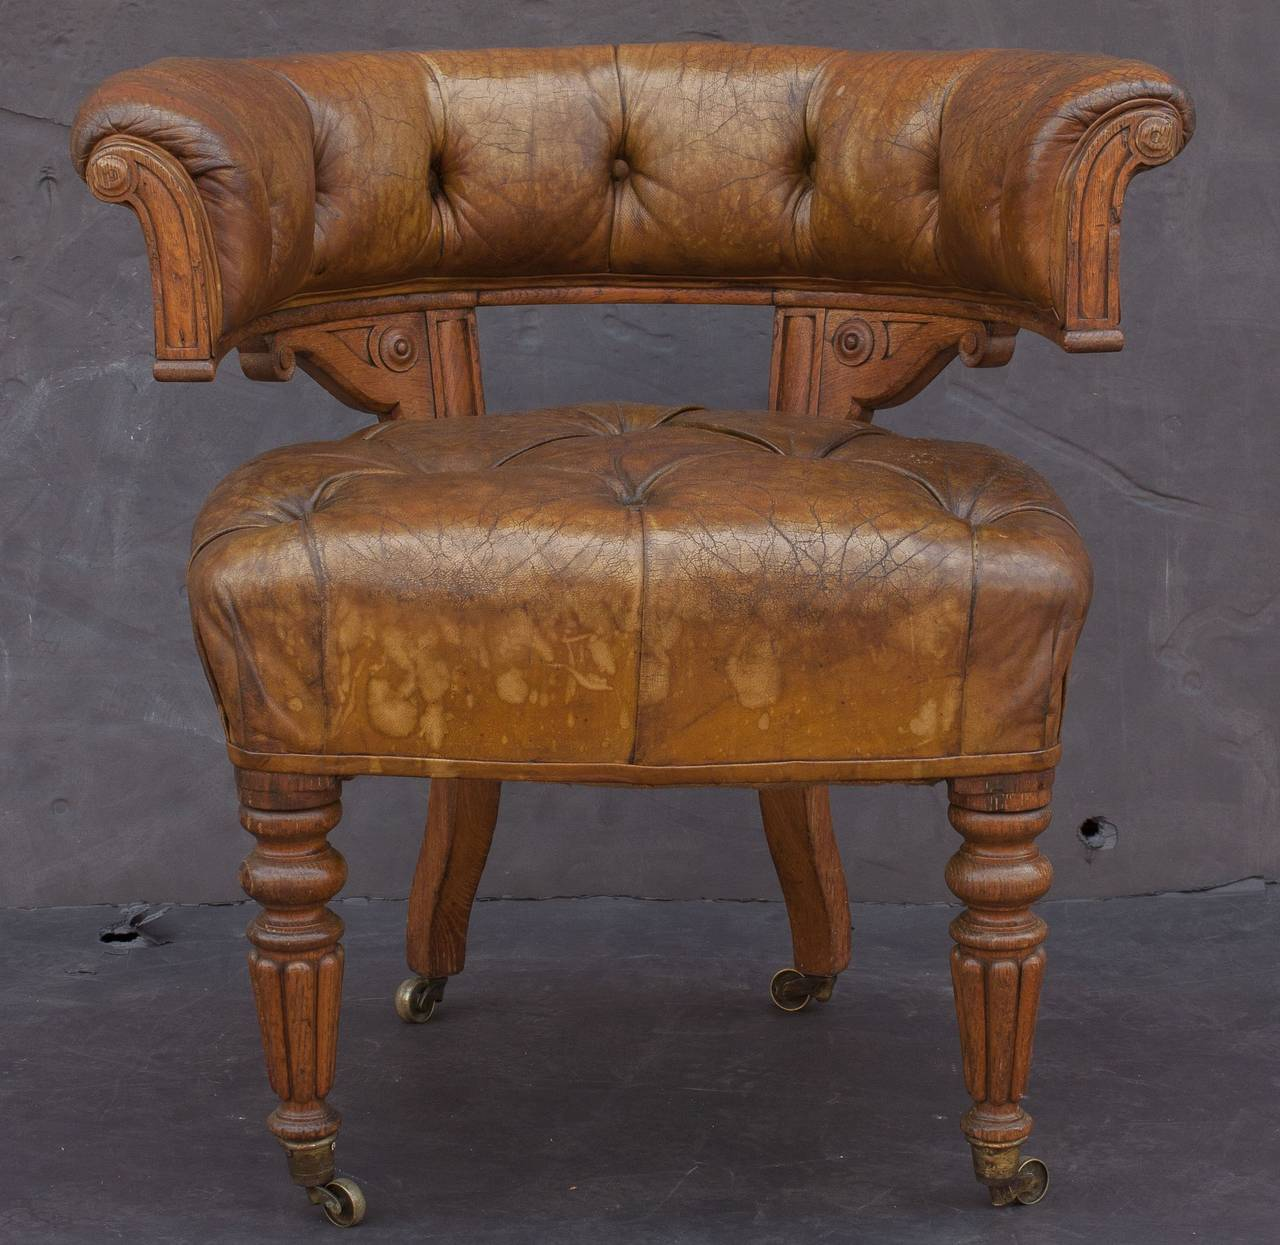 19th Century English Tufted Leather Desk Chair For Sale